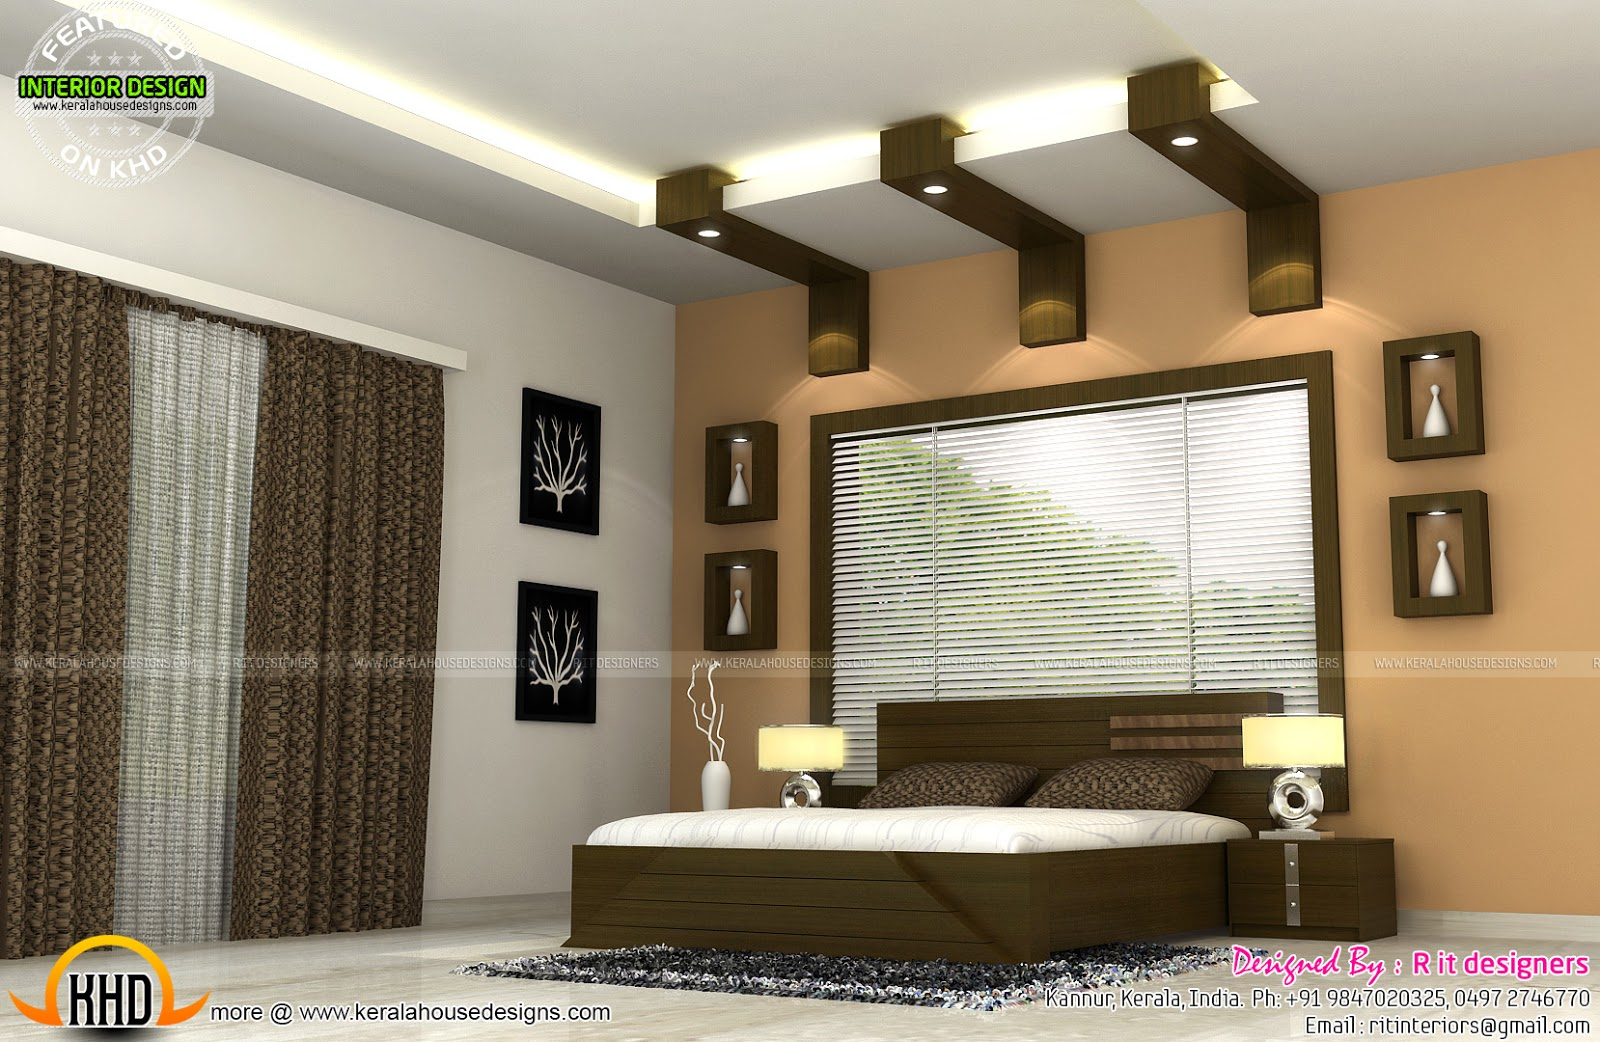 Interiors of bedrooms and kitchen kerala home design and for House plans with interior photos